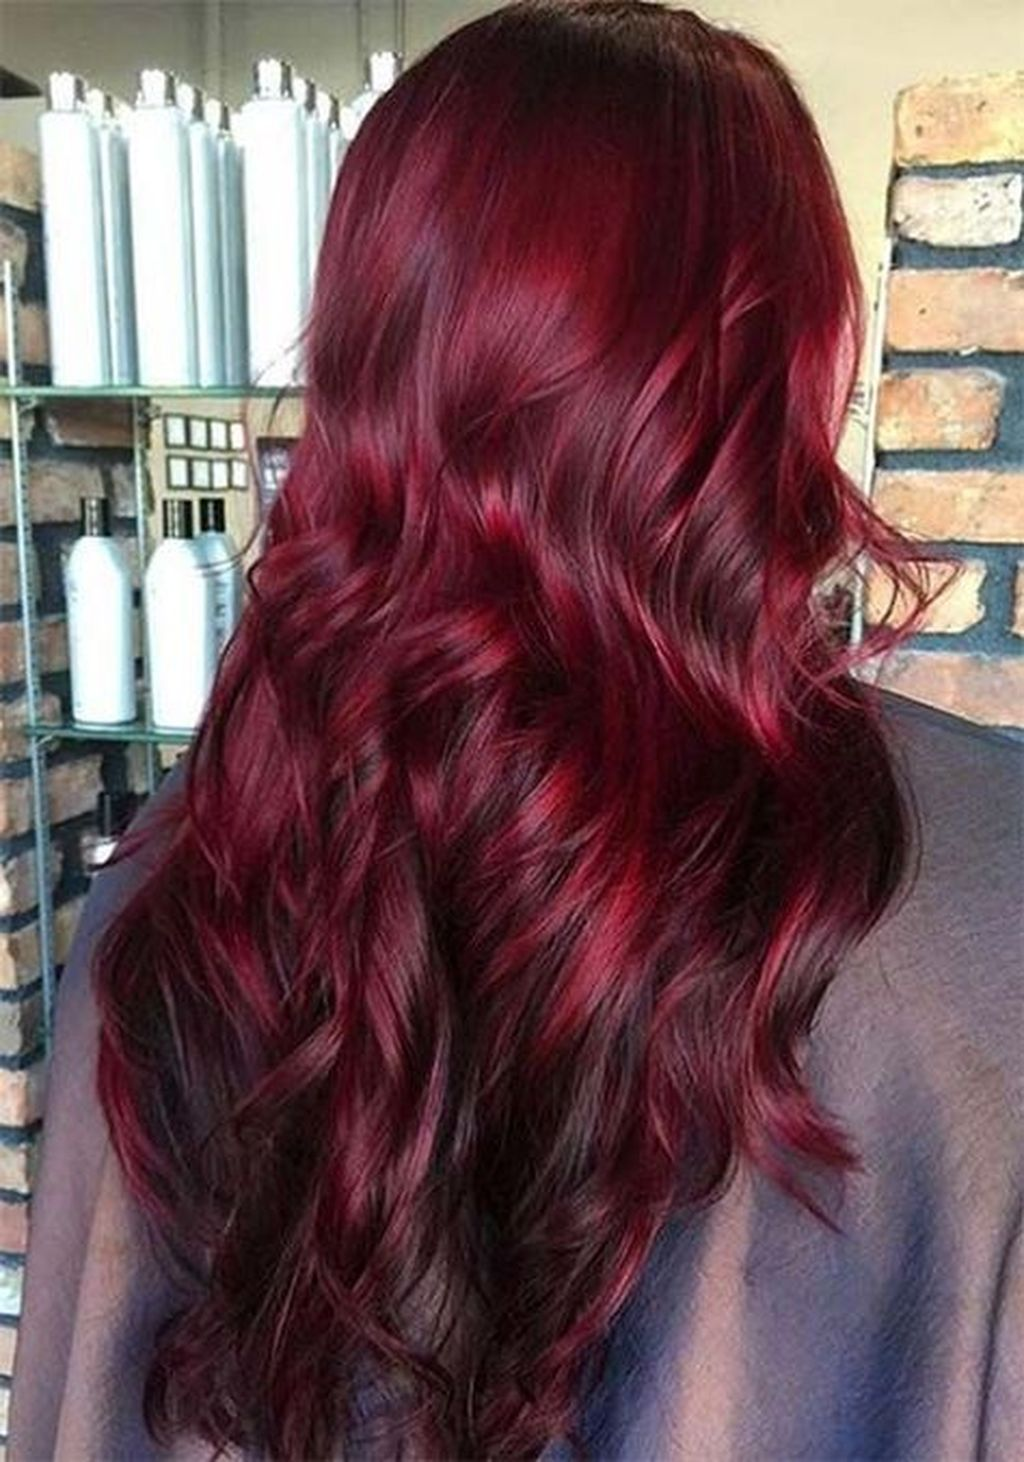 Adorable Copper Hair Color Ideas For This Winter  Copper hair